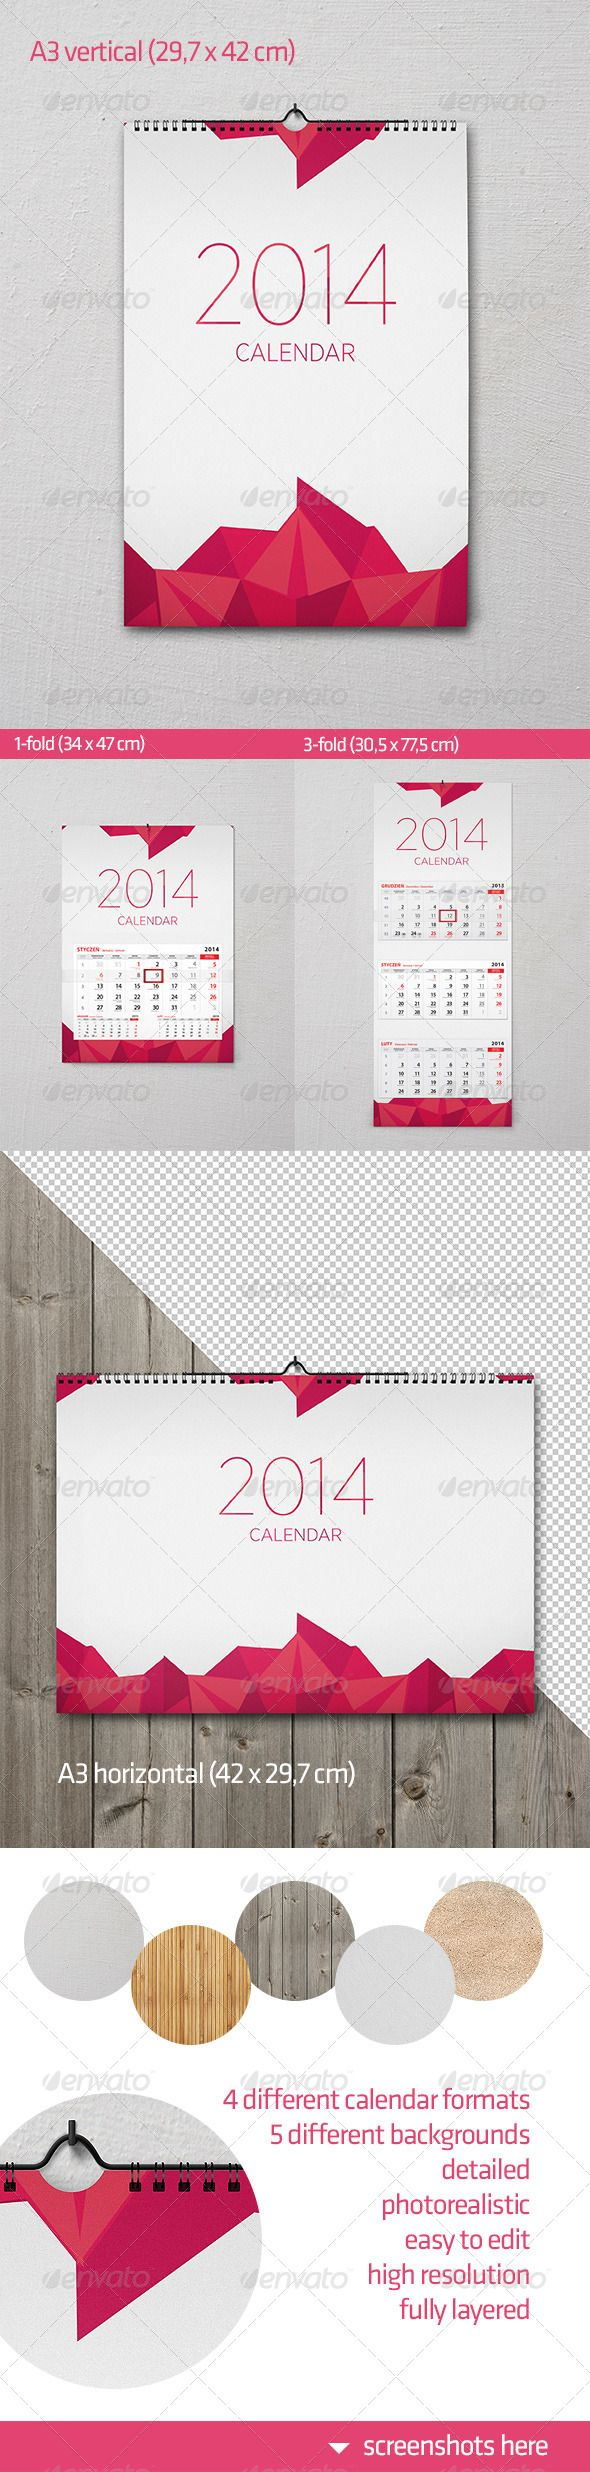 This is a set of photorealistic wall calendar mock-ups. There are 4 different calendar formats: - A3 vertical (29,7×42 cm) - A3 horizontal (42×29,7 cm) - 1-fold (34×47 cm) - 3-fold (30,5×77,5 cm) Mock-ups are based on Smart Objects, fully editable, easy to customize. Files are fully layered, you can change a background (5 different backgrounds included) or delete it and use mock-up with a transparent background.